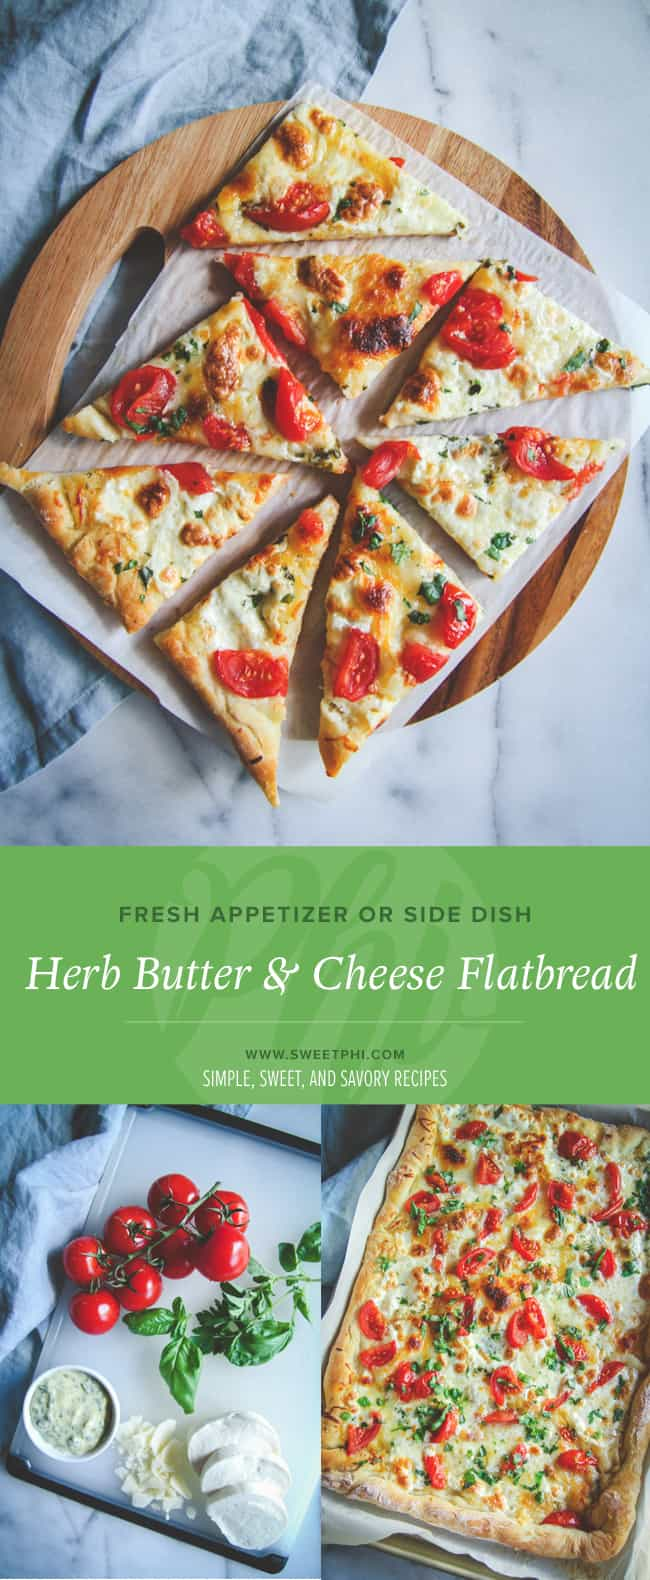 Make a tasty fresh herb butter to add to this flatbread, add cheese and seasonal toppings for an amazing quick meal